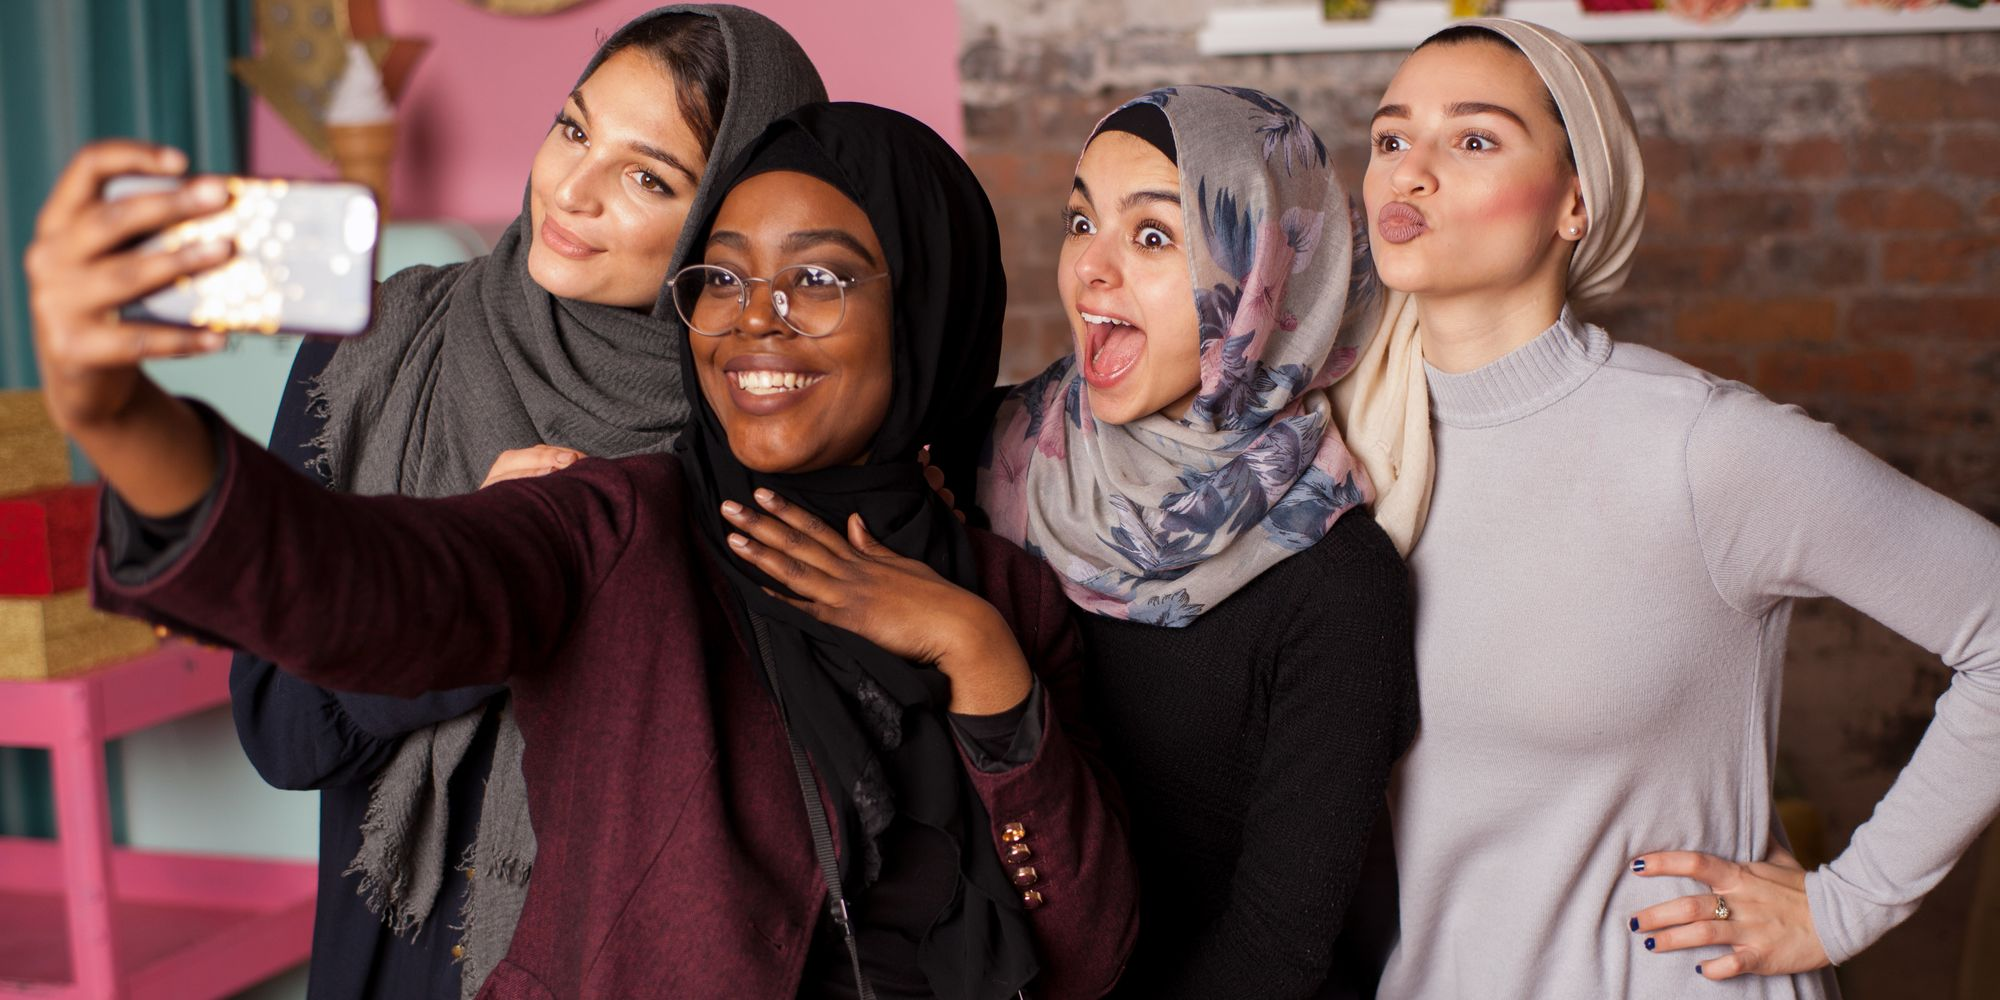 What is it like dating a muslim girl